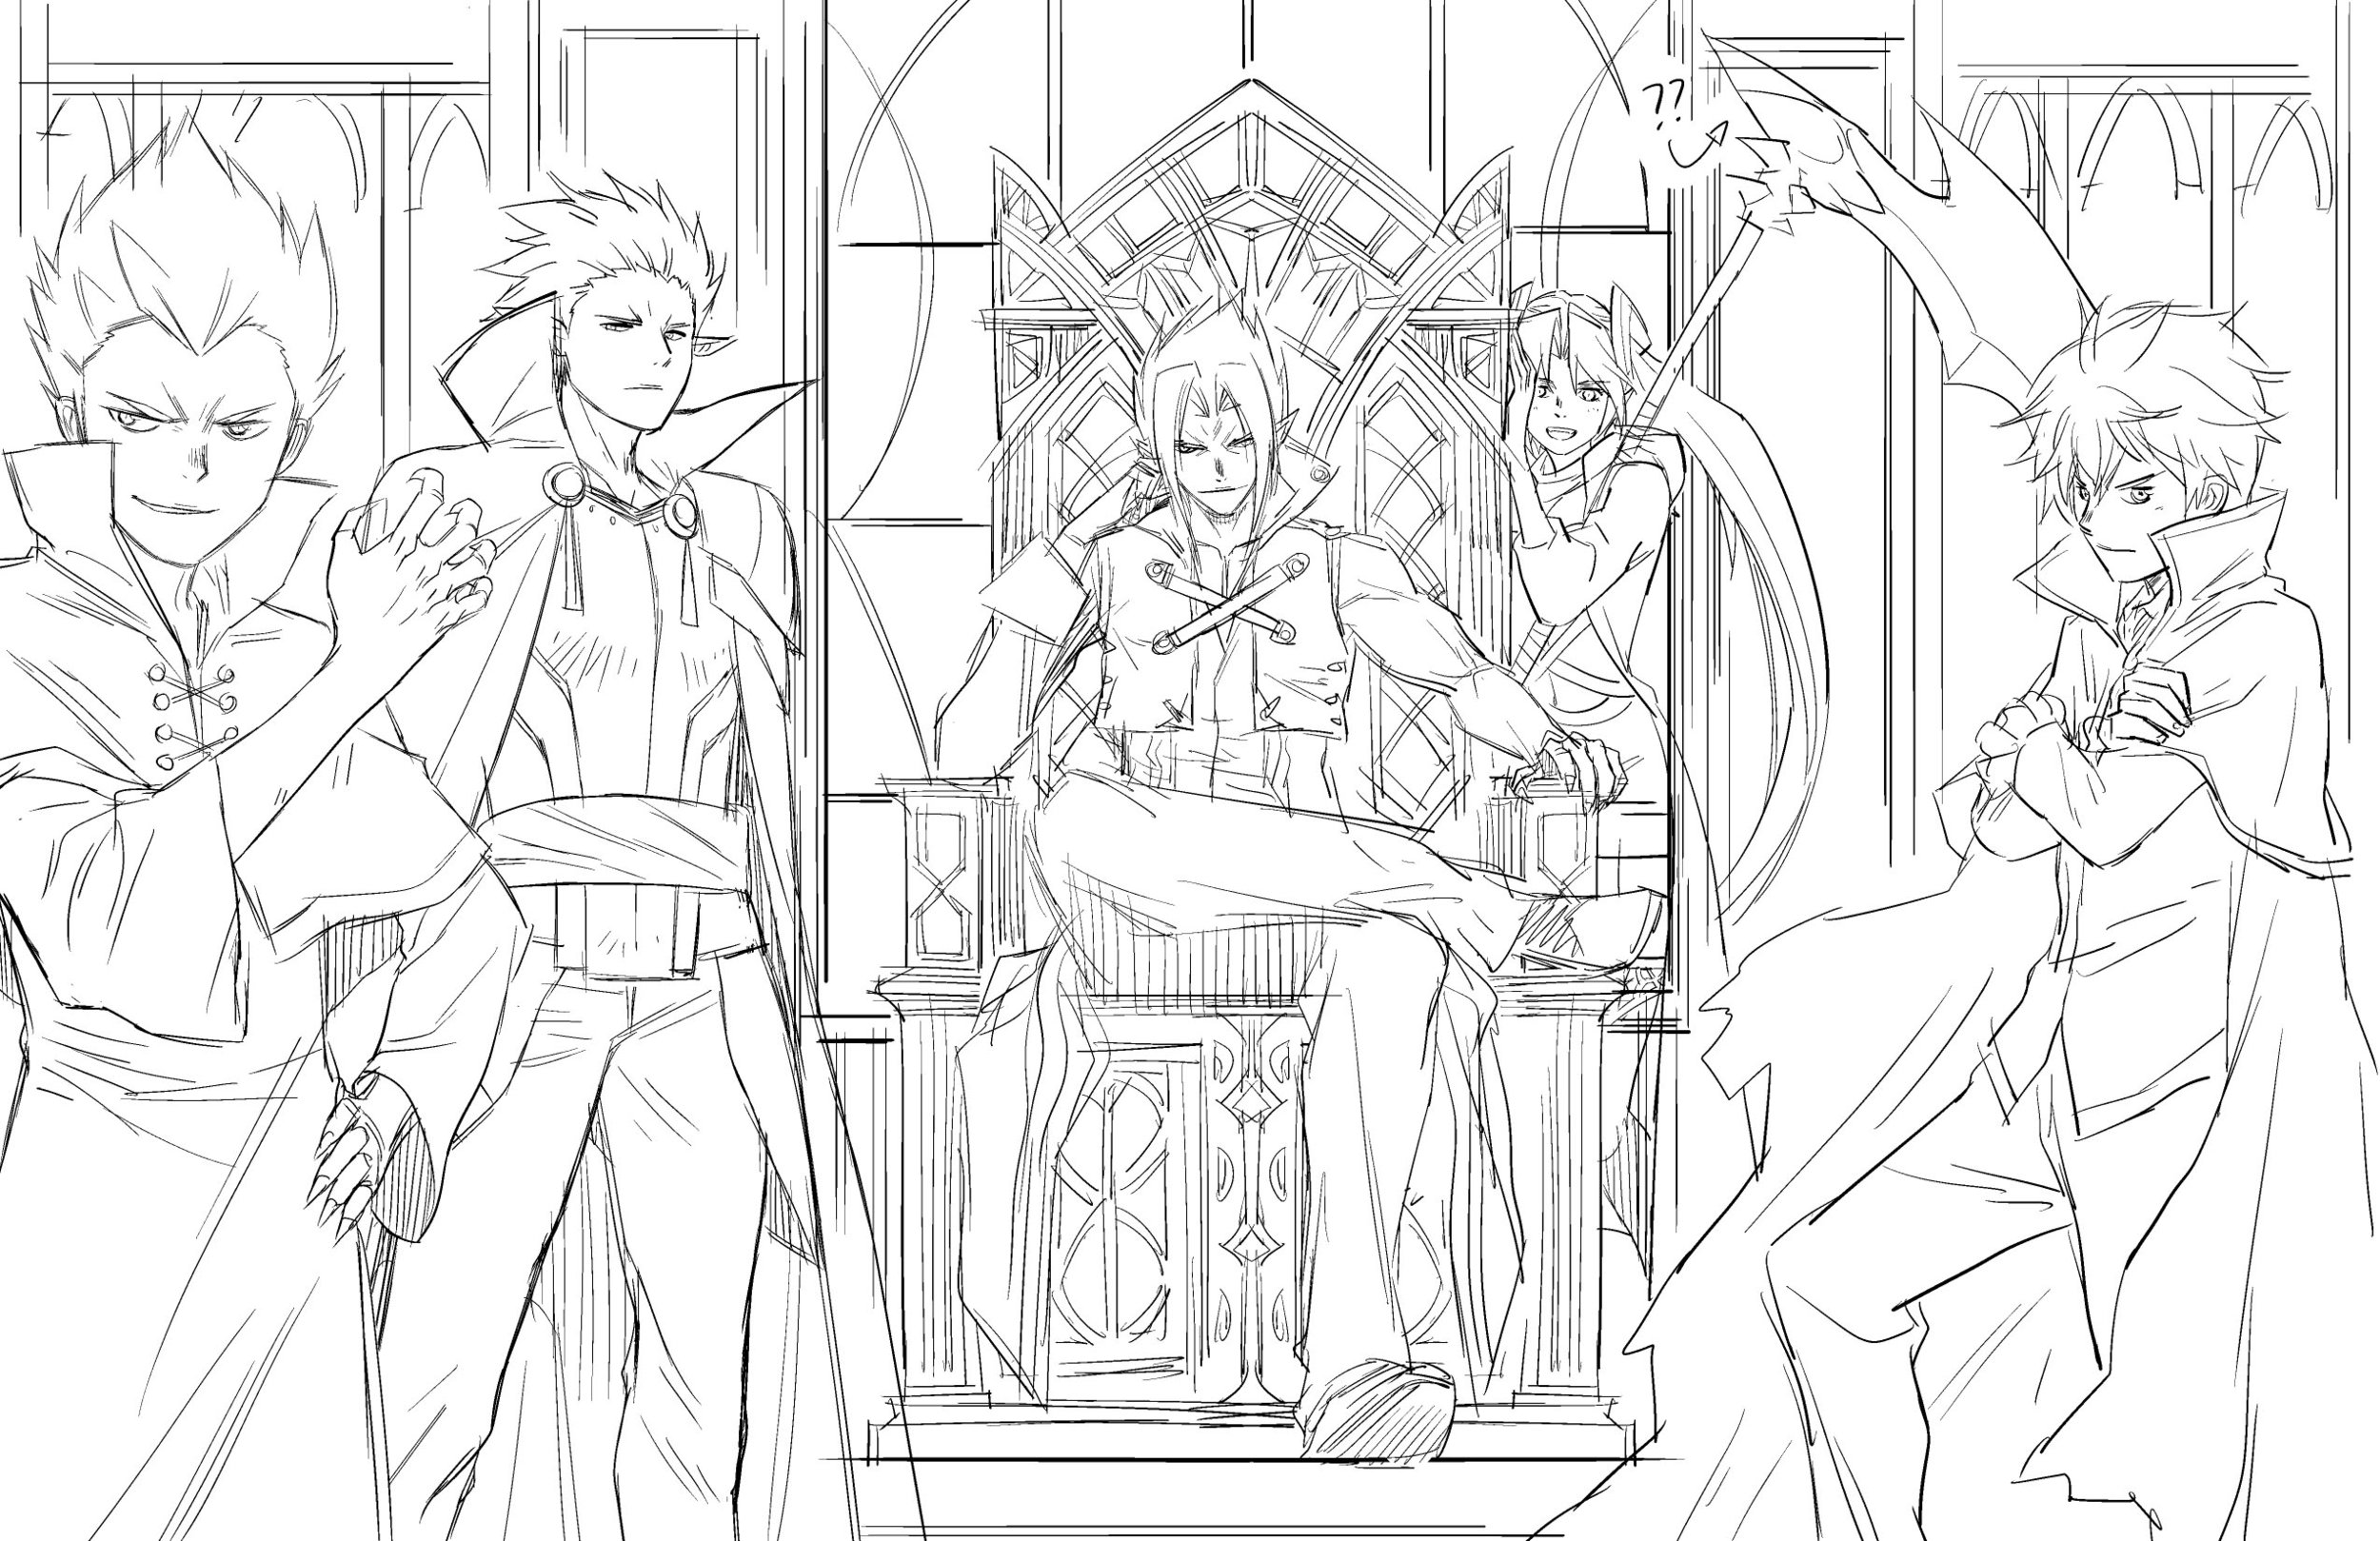 Lineage Clan Image sketch 2.jpg